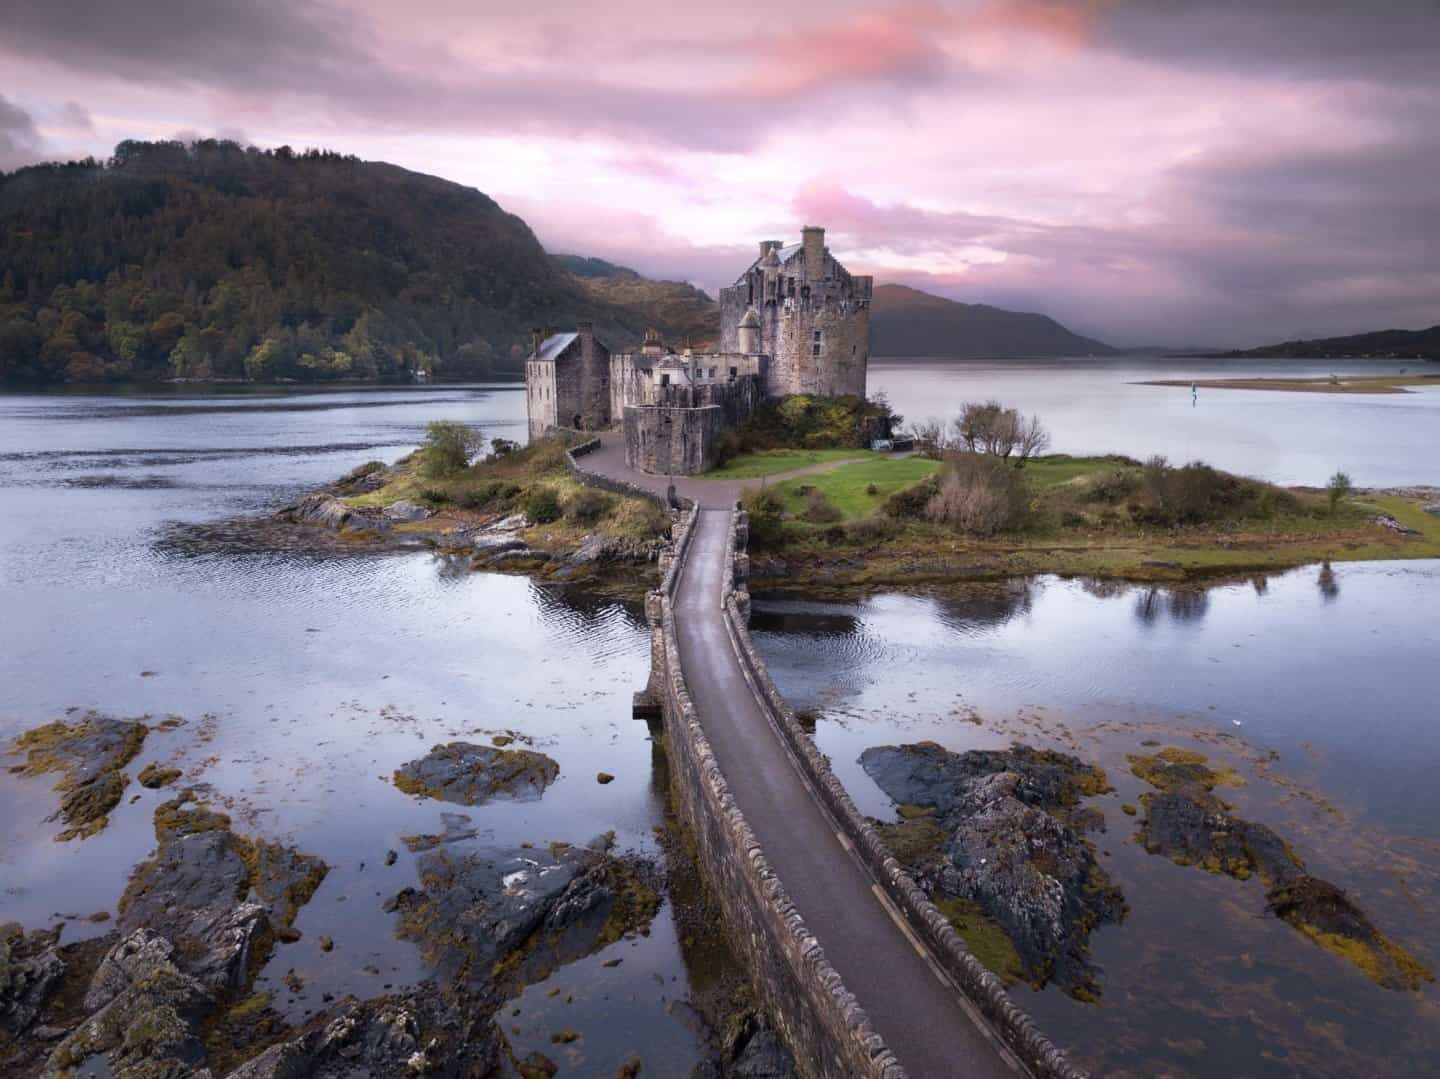 A pink sky sunrise at the most famous and best castle in Scotland, Eilean Donan Castle.